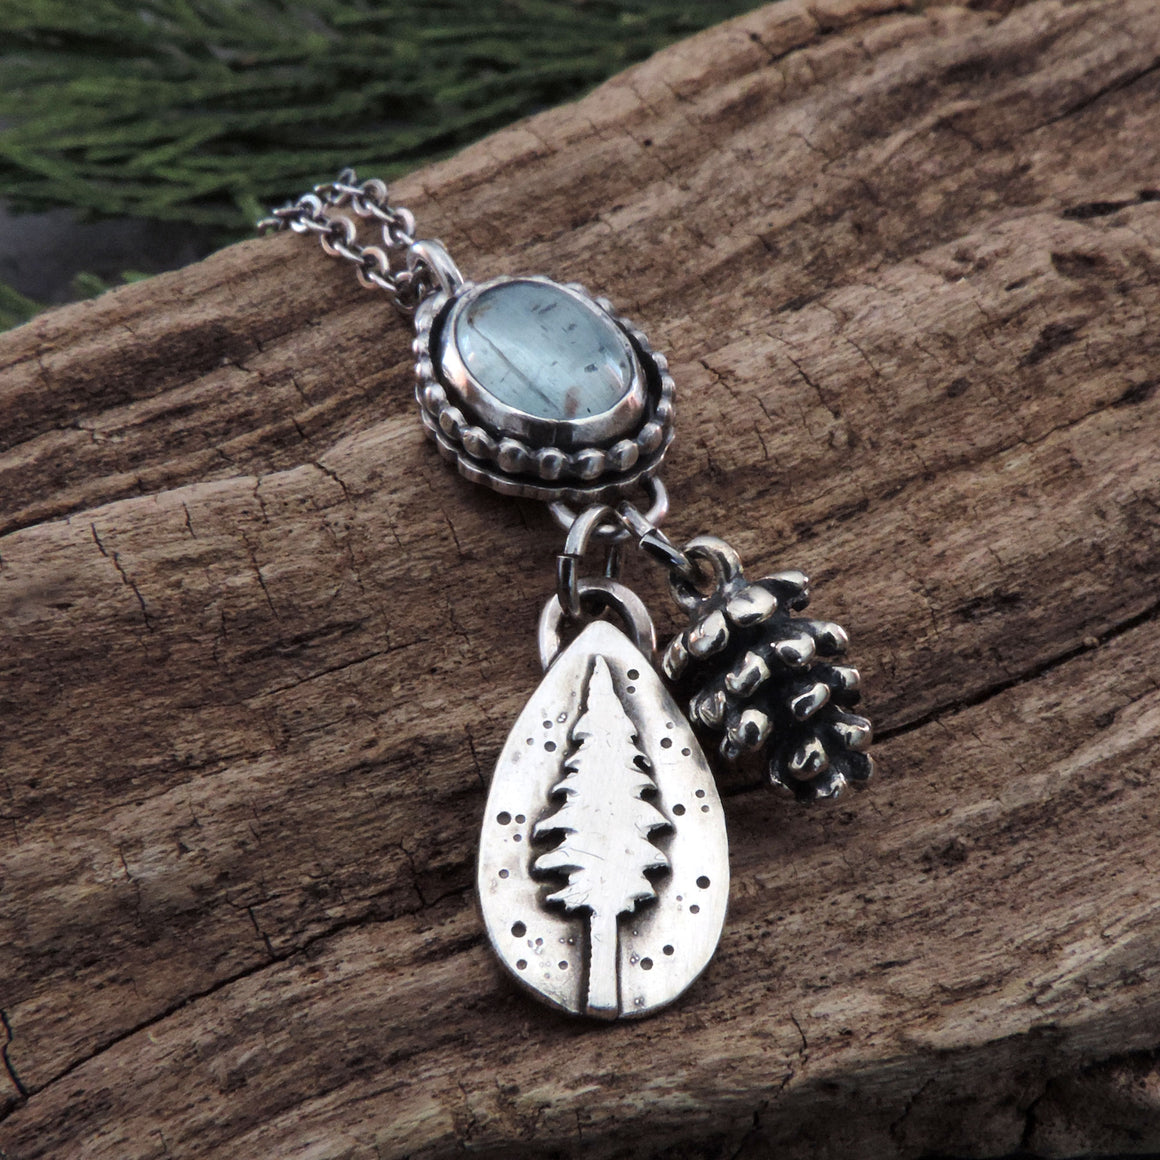 Moss Aquamarine Necklace with Pine Tree and Pine Cone